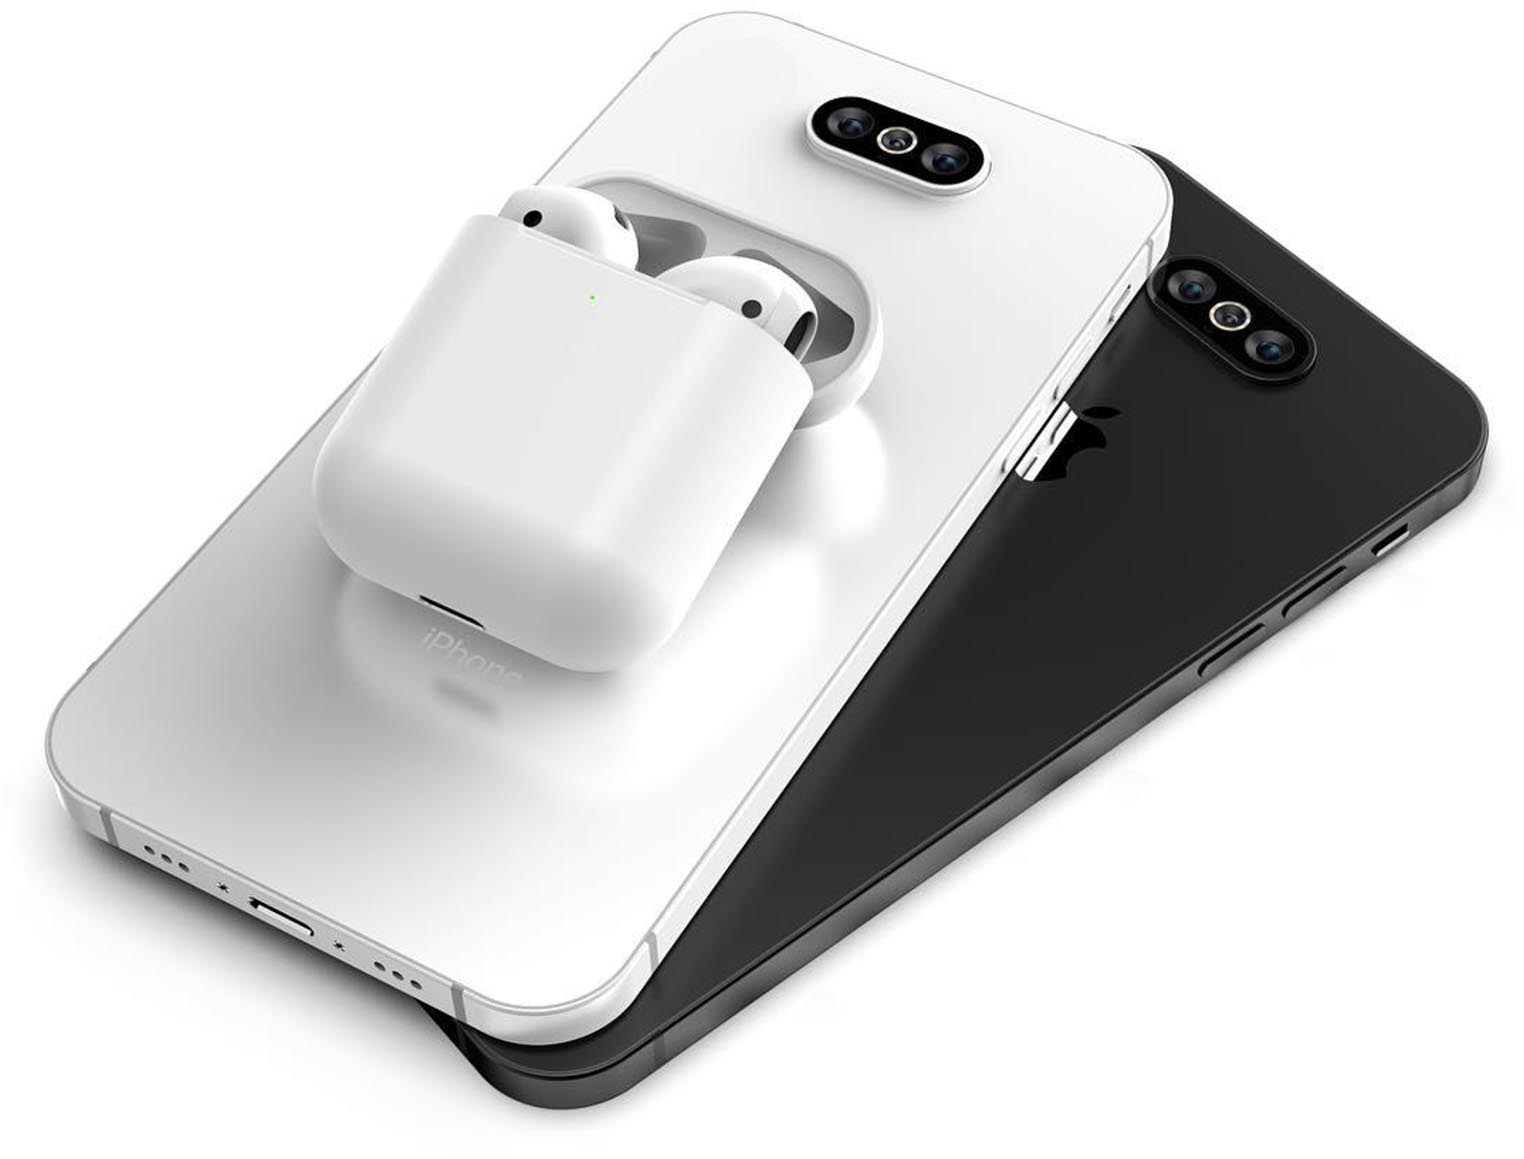 Concept AirPods 2 iPhone 11